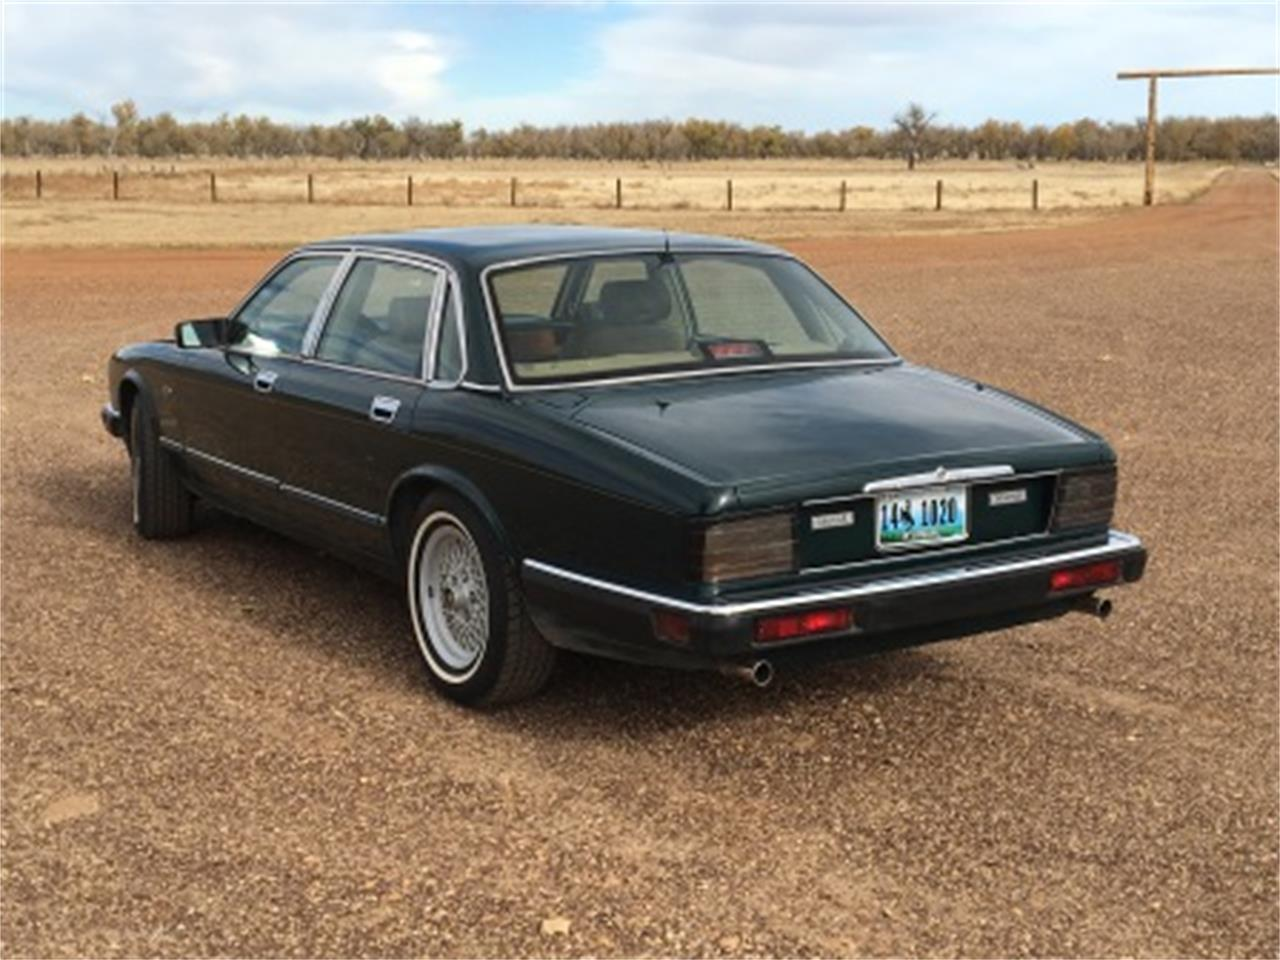 Large Picture of 1991 XJ6 located in Lusk Wyoming - $1,500.00 - L3B6